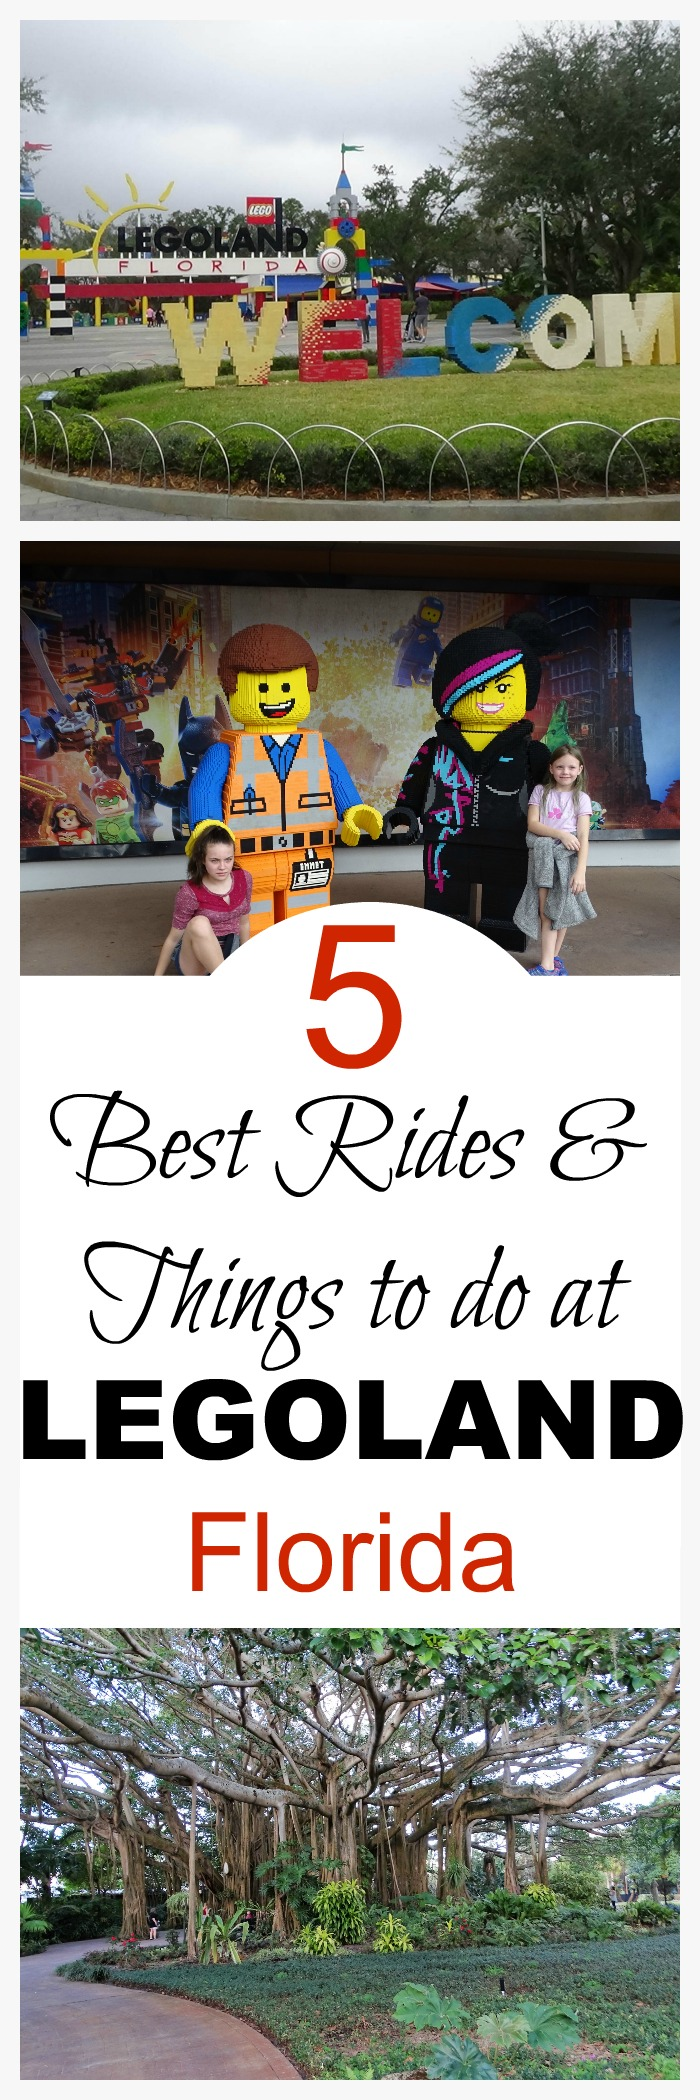 Visiting Orlando? Looking for things to do besides Disney? LEGOLAND Florida is a great place to spend the day. Here are 5 of the best things to do in LEGOLAND Florida.